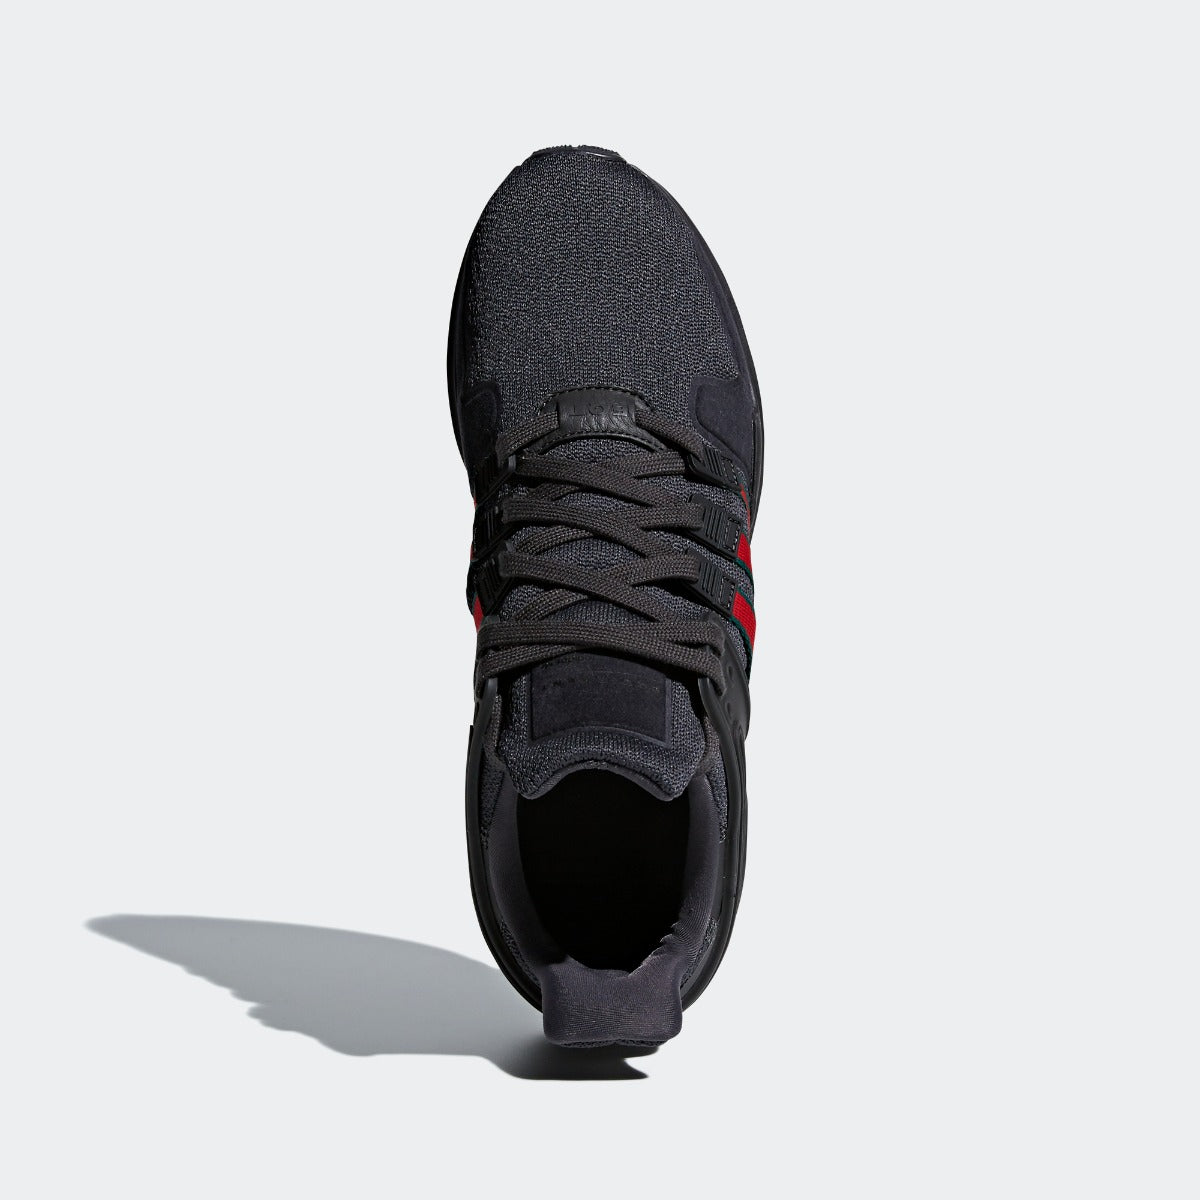 pretty nice 791f2 175cd Men s adidas Originals EQT Support ADV Shoes All Core Black  Red  Green. 1